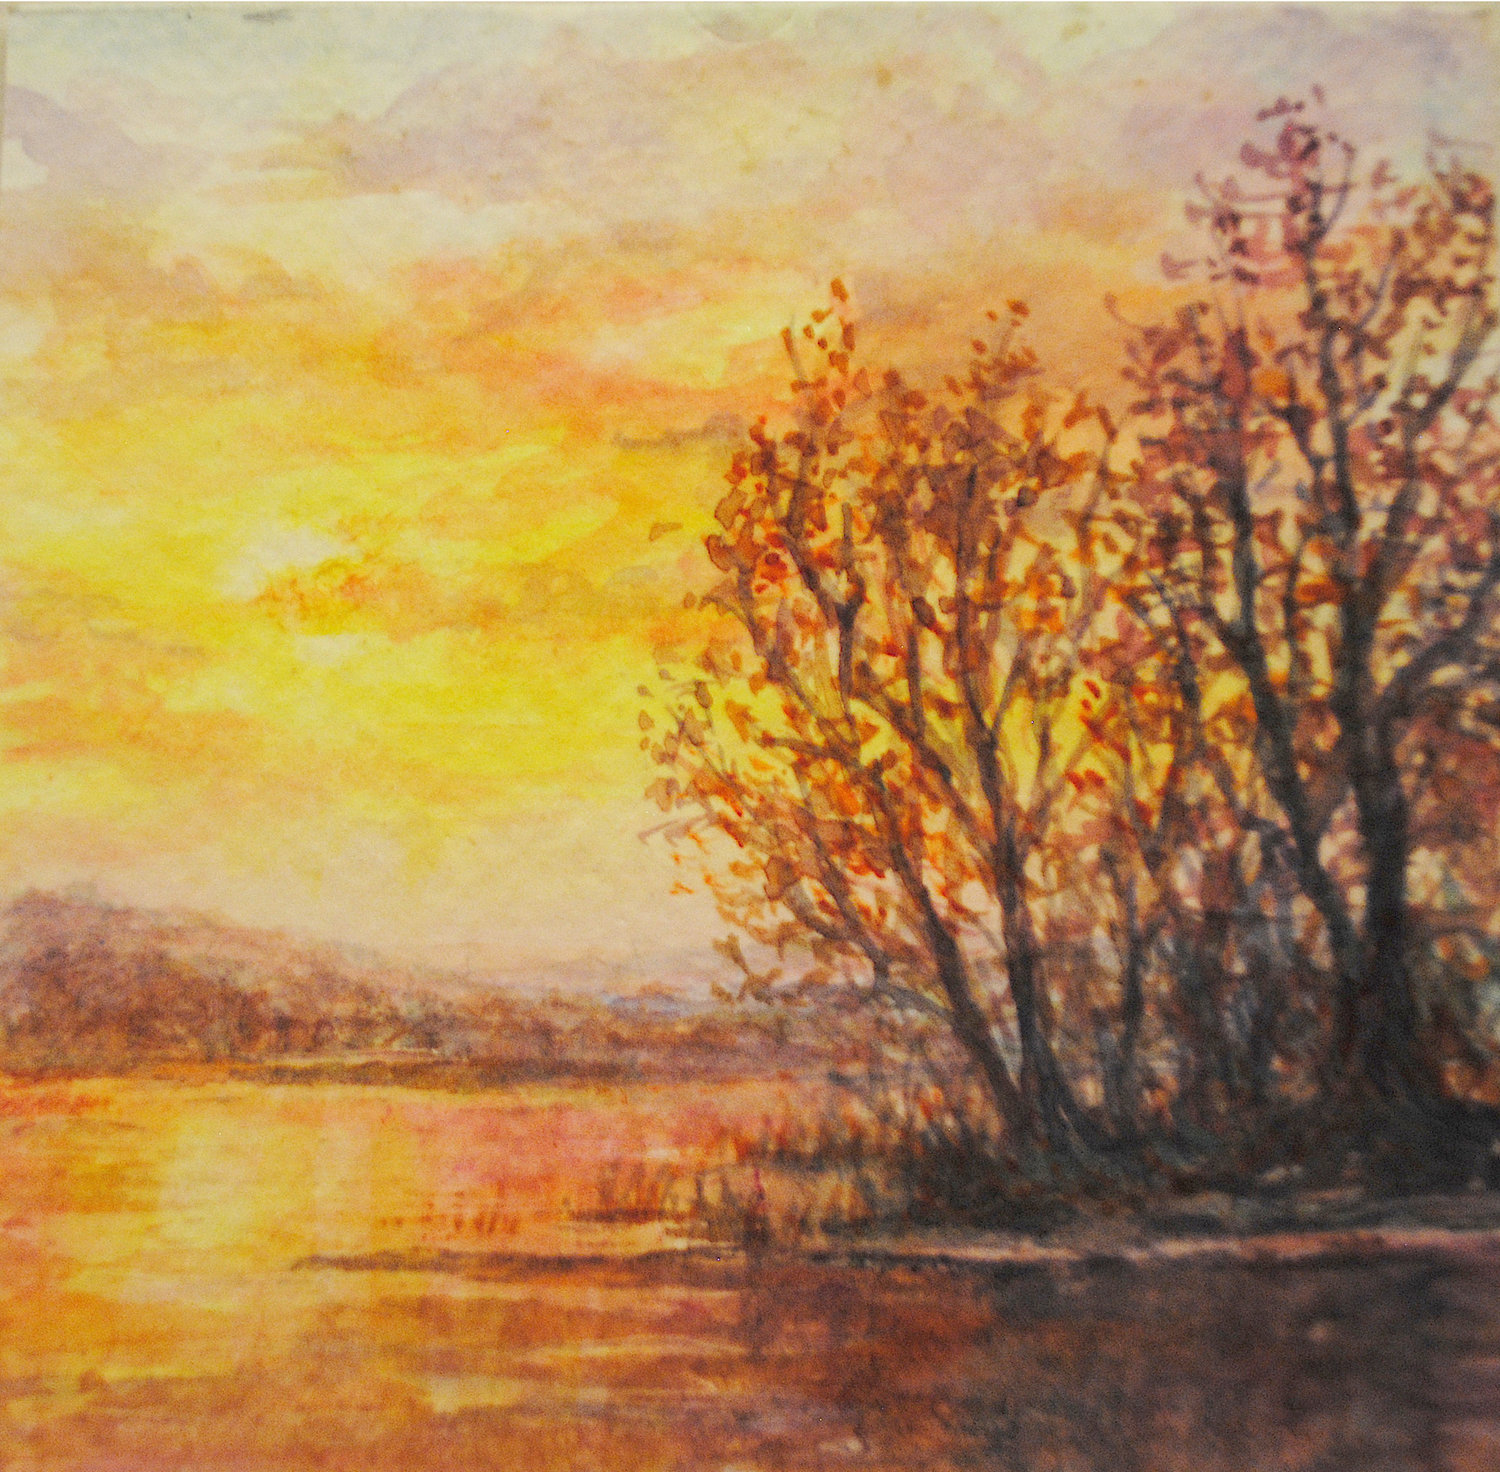 STRIKING SUNSET — An autumn sunset by an anonymous artist waste of the pieces featured in the Just Add Water exhibit last year.